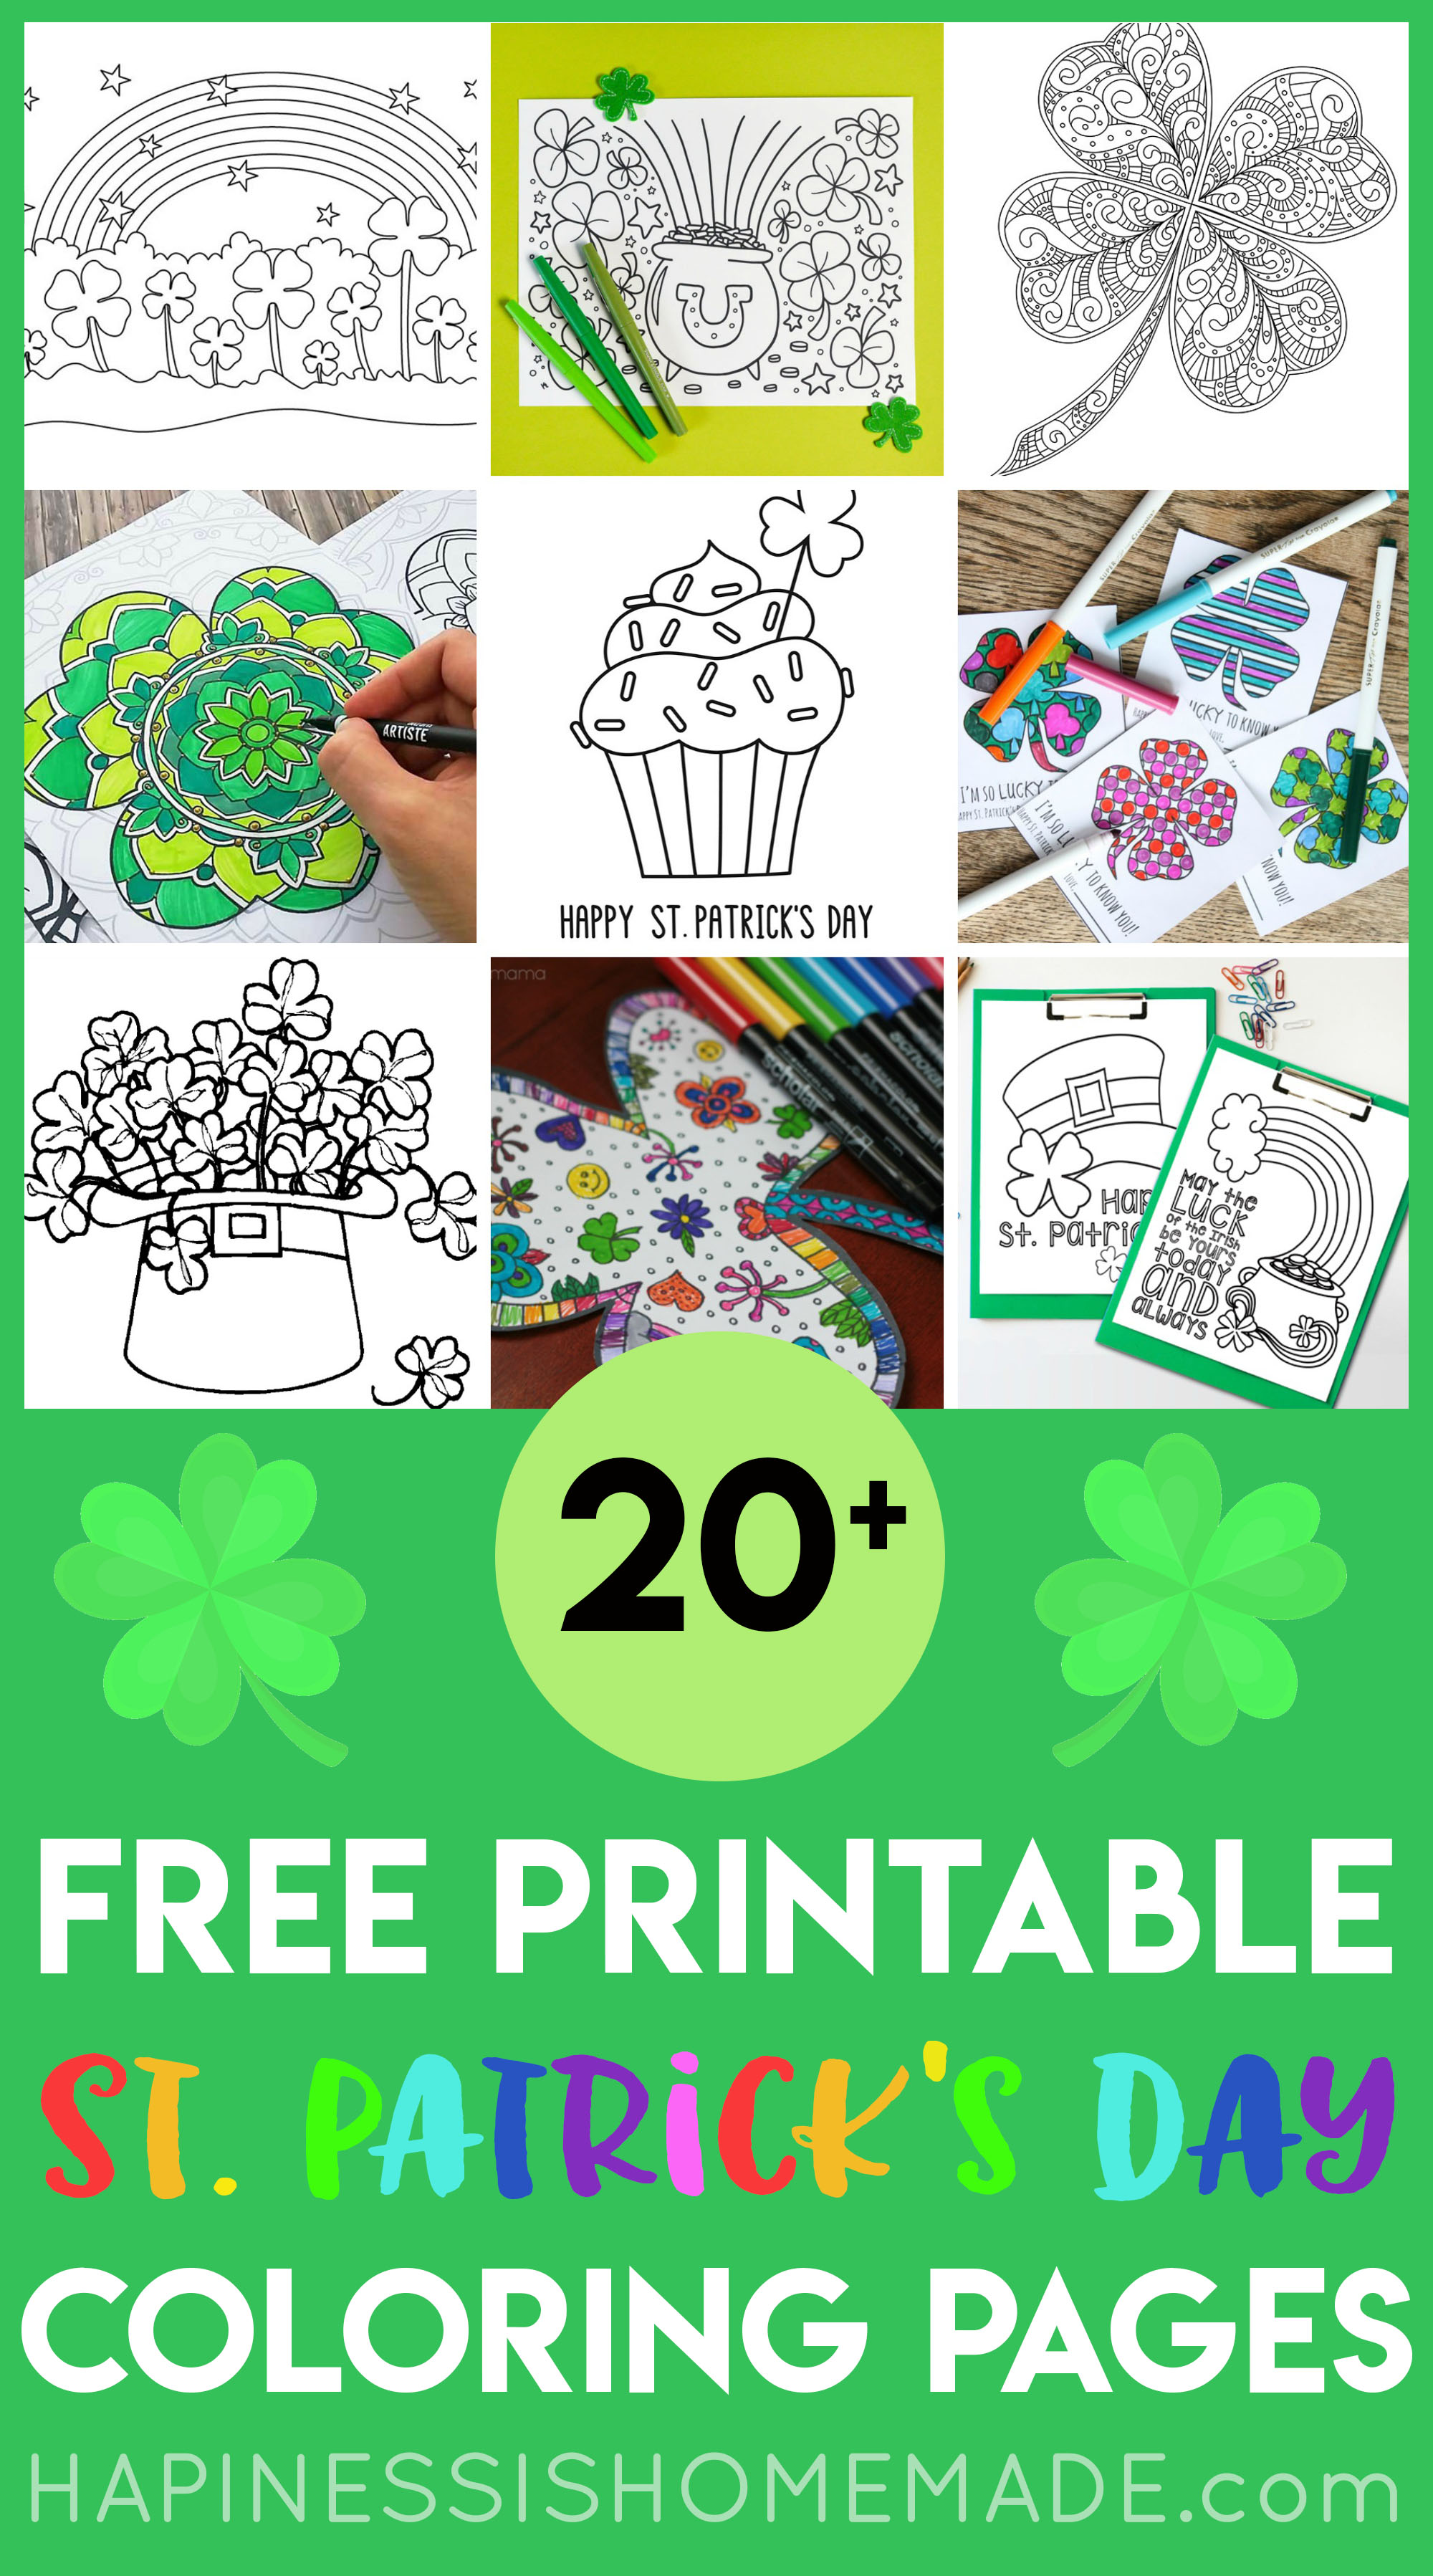 photo relating to St Patrick's Printable Coloring Pages called Totally free St. Patricks Working day Coloring Web pages - Contentment is Do-it-yourself